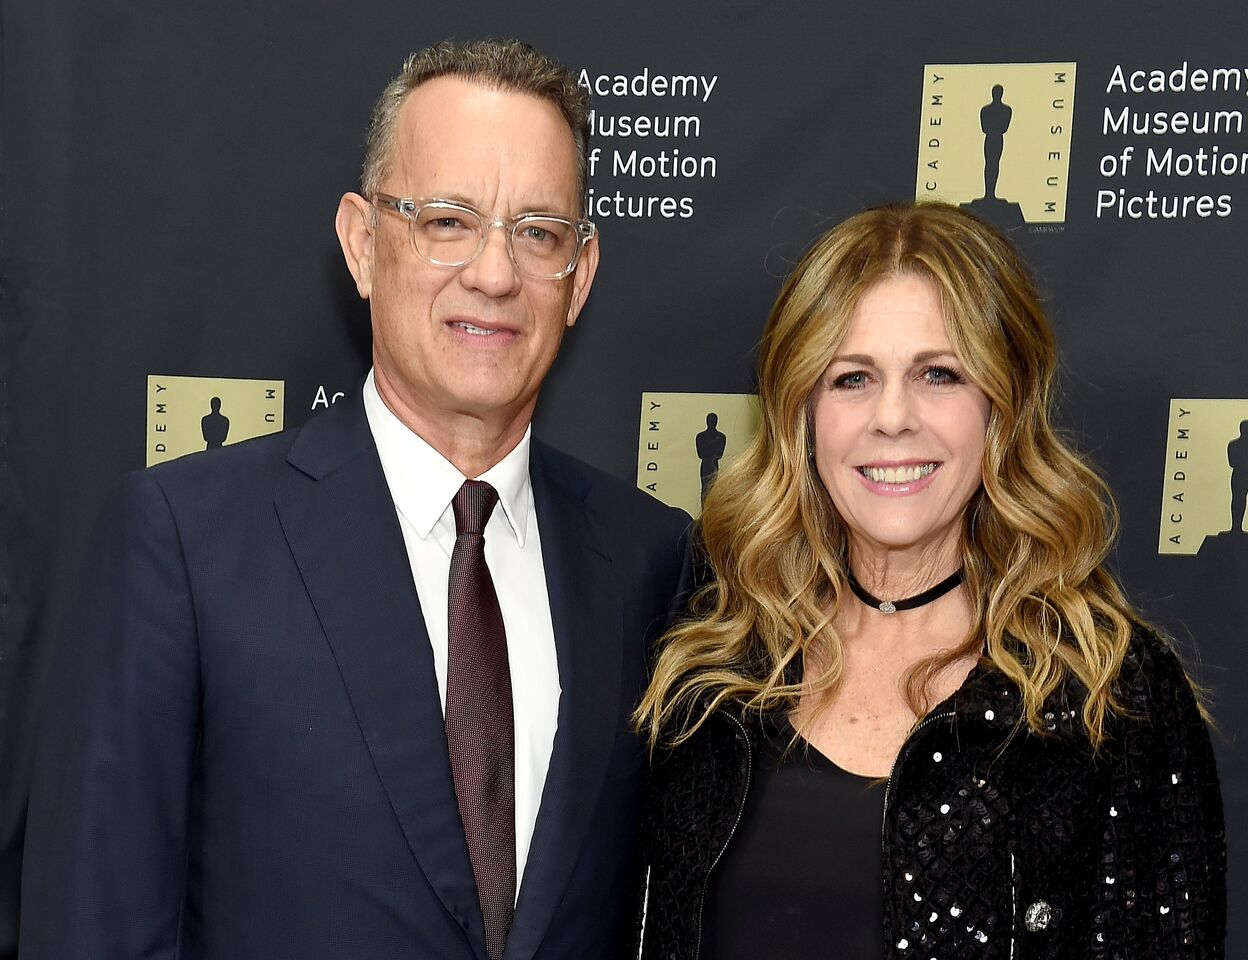 Tom Hanks and Rita Wilson attend The Academy Museum Of Motion Pictures Unveiling of the Fully Restored Saban Building. | Source: Getty Images